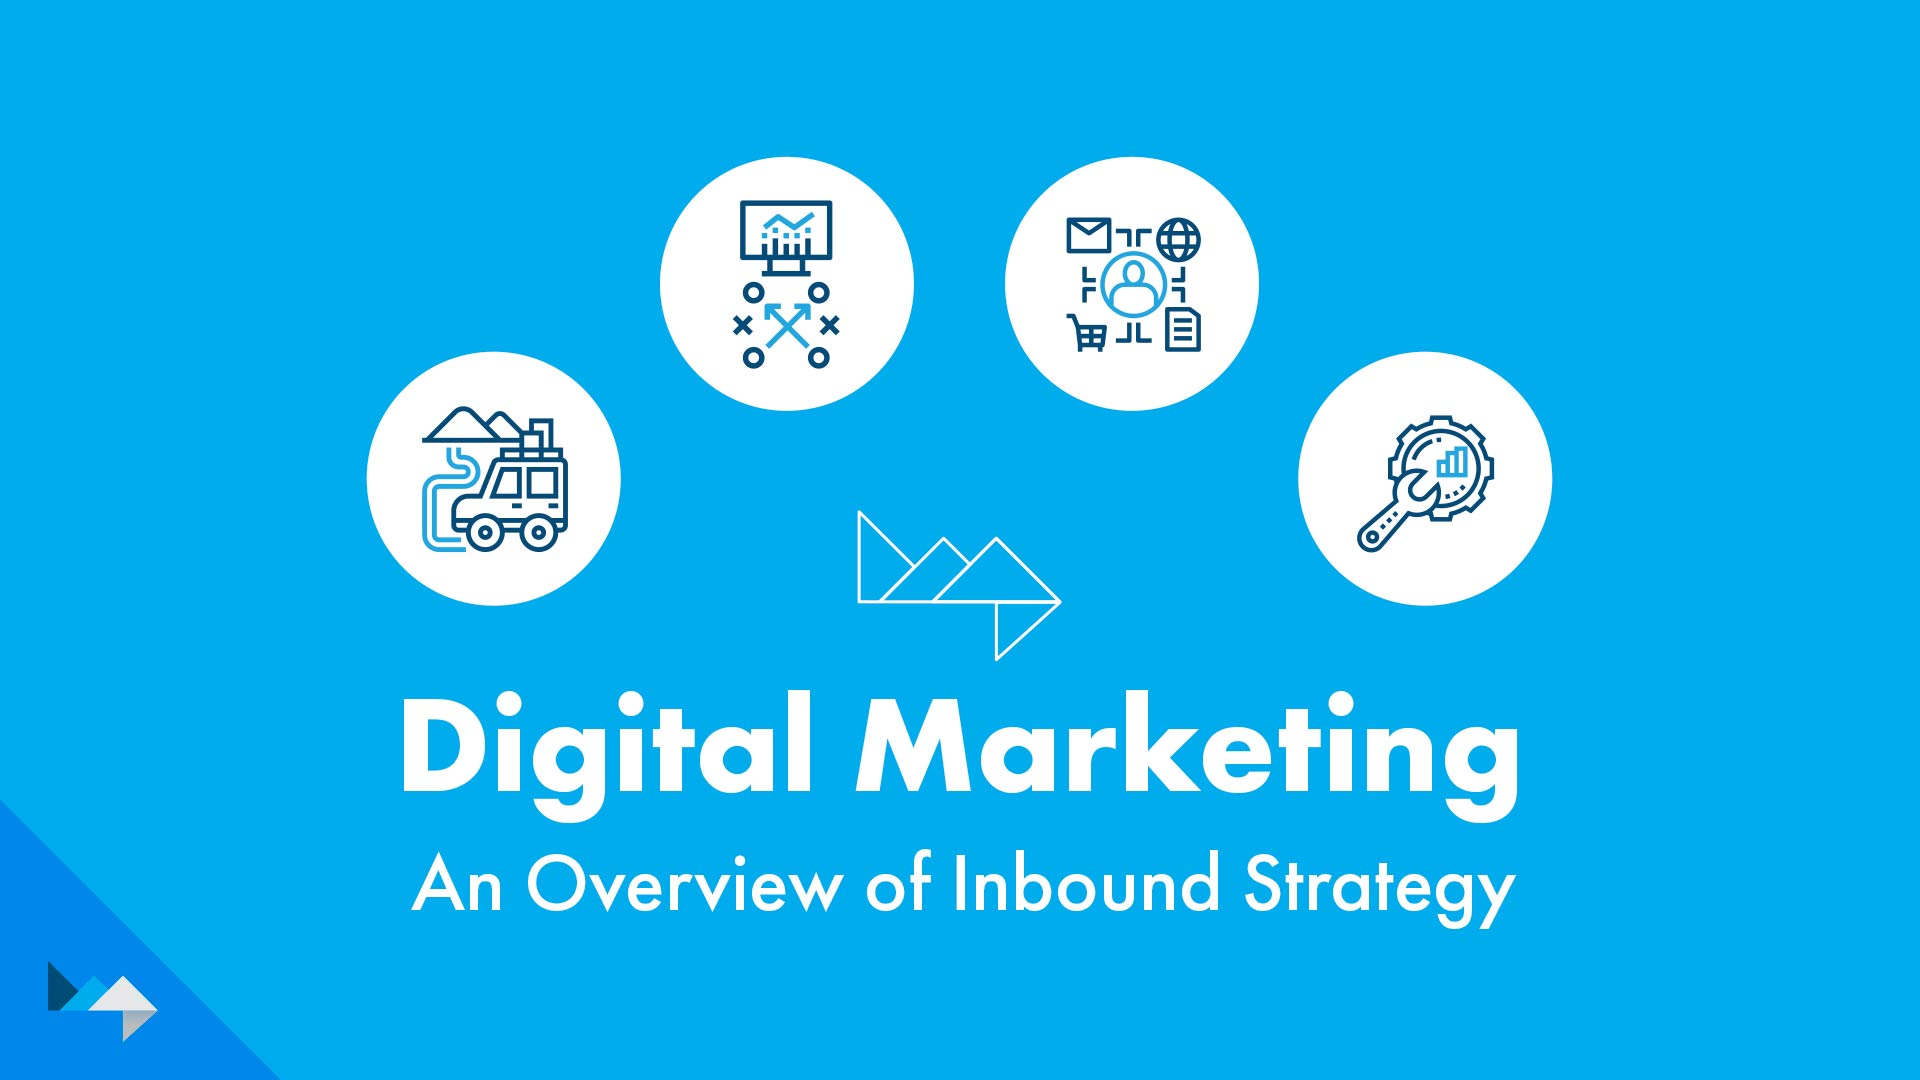 Digital Marketing Infographic – An Overview of Inbound Strategy